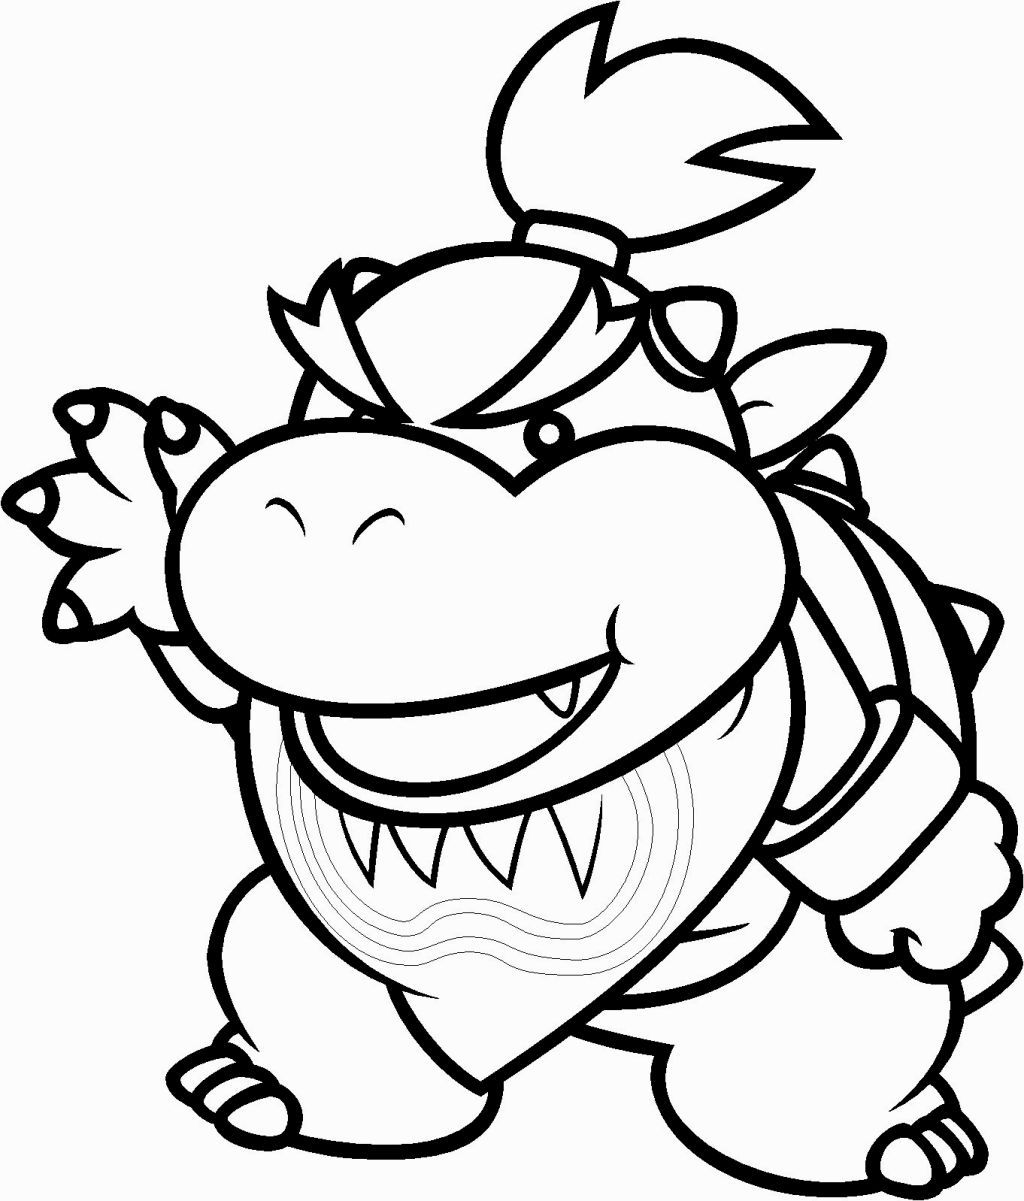 Bowser Jr Coloring Pages Super Mario Coloring Pages Mario